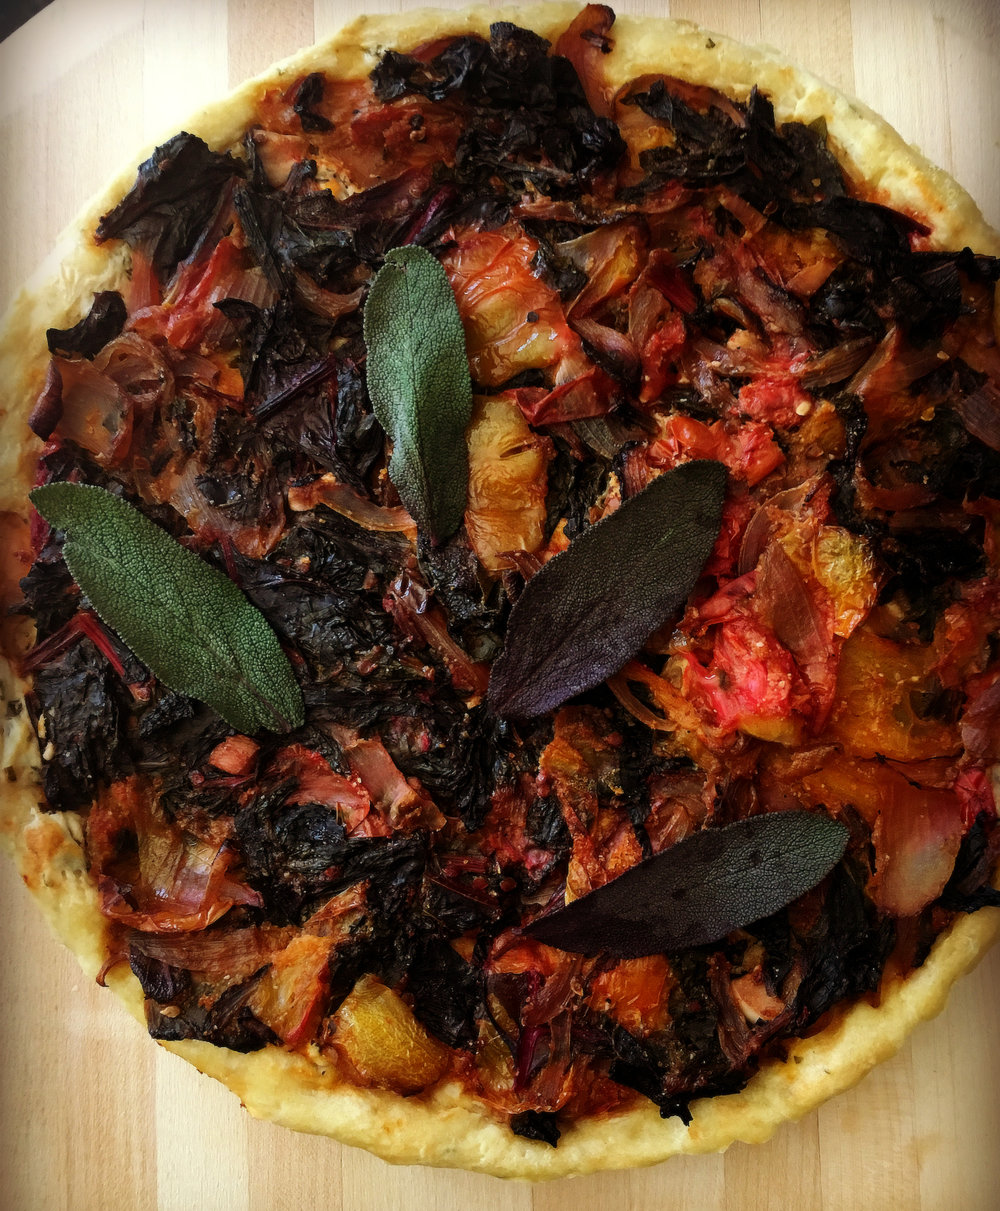 Tomato & Chard tart  - Yield: One ten-inch tart, about 8 servingsIngredients:For the yeasted dough:2 ¼ teaspoons active dry yeast½ teaspoon sugar⅔ teaspoon salt½ cup water3 tablespoons olive oil1 egg, lightly beaten1 cup bread flour¾ cup whole wheat flour2 teaspoons dried  Italian herb blend (oregano, thyme, marjoram, & sage)For the tart filling:2 tablespoons olive oil2 small onions or shallots, thinly sliced2 cloves garlic, minced finely1 ½ pounds heirloom or other fresh tomatoes, peeled, seeded, & chopped2 cups Swiss chard, rinsed, stems removed, & cut into thin strips2 tablespoons chopped fresh sage, plus a handful more for serving¼ cup cornmeal or polentaSalt and freshly ground black pepper½ cup herbed cream cheese or goat cheeseInstructions:To make the yeasted dough, dissolve the yeast and sugar in the water and let stand until it's bubbly, about ten minutes. Whisk the oil, egg, and salt together with the proofed yeast, then stir in the flours. When the dough is too stiff to work with a spoon, turn it onto a lightly floured counter and knead until smooth and elastic, about four minutes. Set though dough in an oiled bowl and turn it over to coat, cover with a towel, and let rise until double in bulk, about forty-five minutes. Set aside until ready to use.To make the filling, warm the oil  over medium heat in a wide skillet. Cook the onions until translucent, about ten minutes. Add the garlic, tomatoes, chard, and fresh sage. Toss to combine and cook until all vegetables are tender, about ten minutes more. Add the salt and pepper. Remove from heat. Let the vegetables cool for a few minutes, then pour into a colander to drain off any excess liquid. Stir in the cornmeal. Allow to cool completely.To assemble and bake, preheat oven to 400 degrees F. Roll the dough into a thin circle, and line a ten-inch *tart shell with it. Add the cream cheese or goat cheese and spread evenly. Add the cooled vegetables. Spread evenly. Bake for thirty five minutes, or until the dough is golden and the filling is bubbly.To serve, allow the tart to cool slightly then remove it from its pan. Sprinkle fresh sage leaves on top. Enjoy.Notes:This recipe is closely adapted from In My Kitchen by Deborah Madison.*If using a tart pan with a removable bottom, cover the bottom in foil before baking. This will keep any excess juices from spilling into the oven.For a full meal, serve with a green salad, a platter or smoked meats or cheeses, and a bottle of chilled wine.